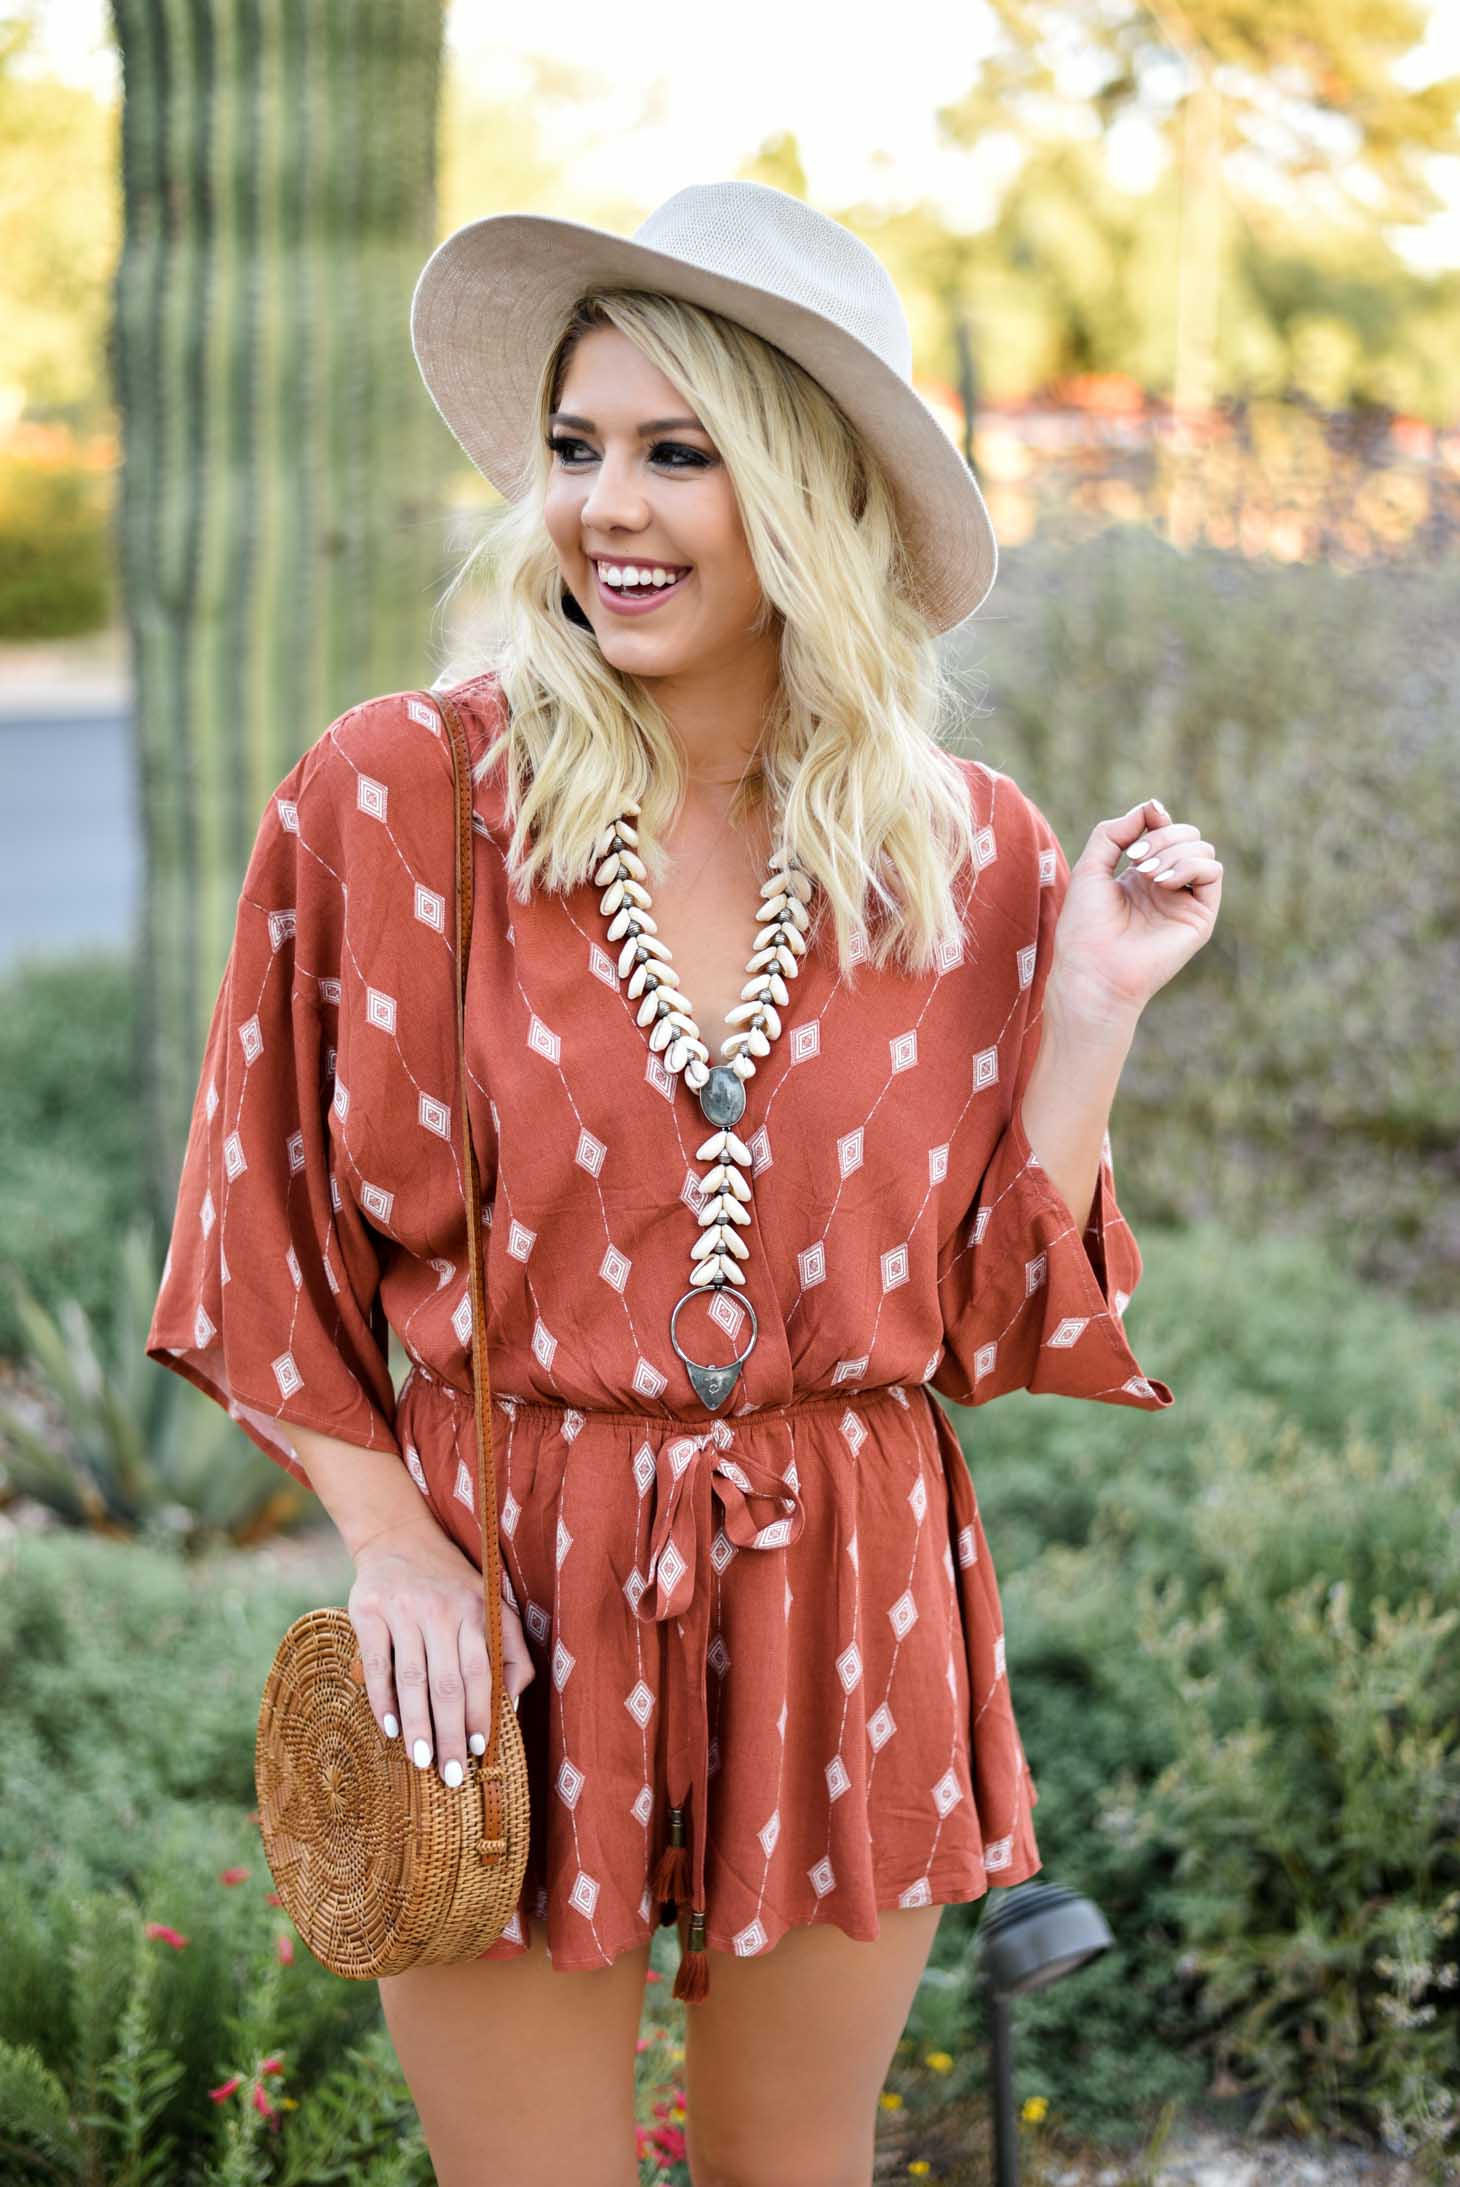 Erin Elizabeth of Wink and a Twirl I'm this summer romper from Red Dress Boutique